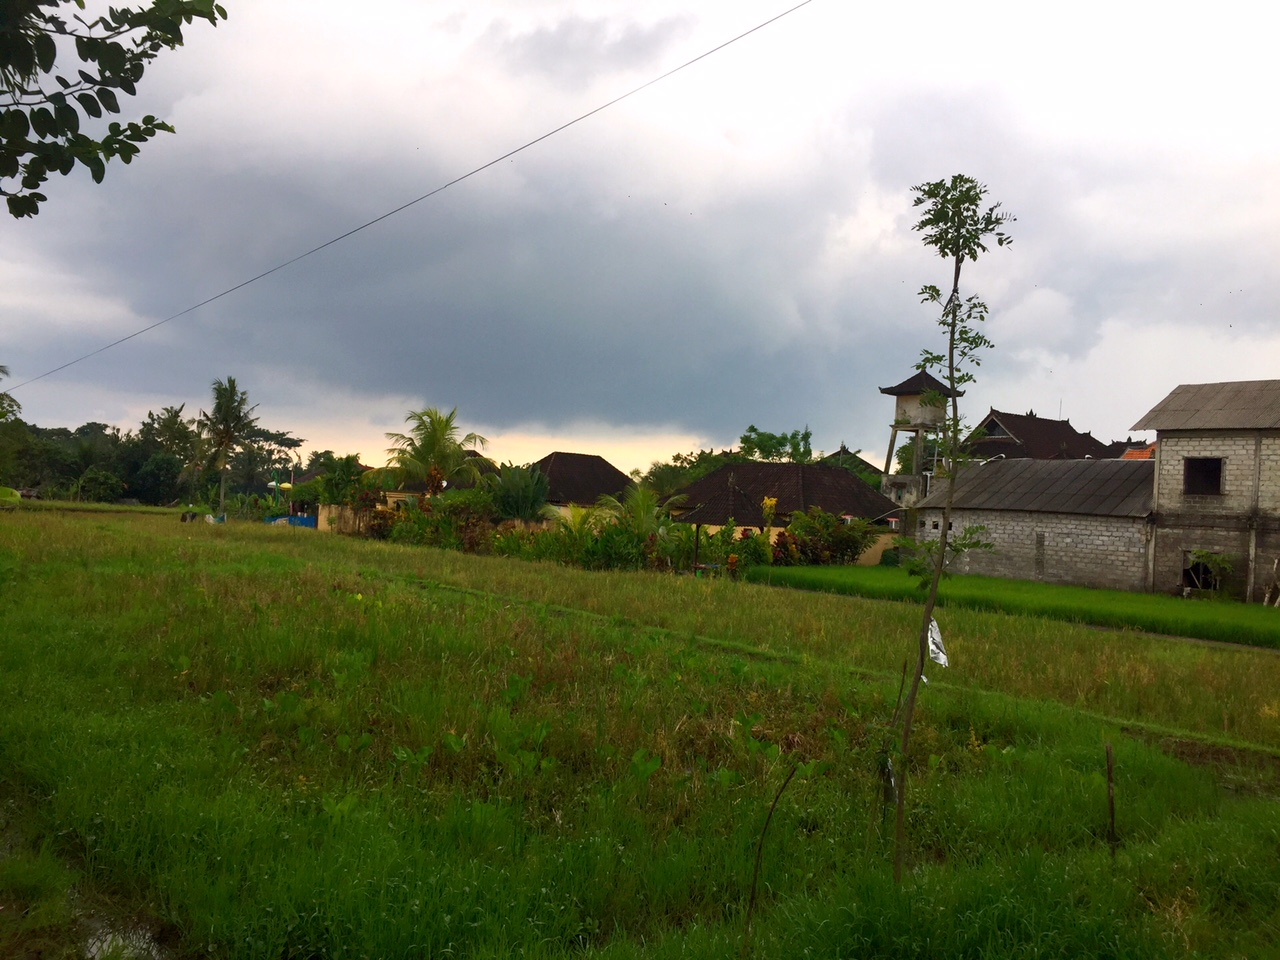 Reisfeld in Ubud.